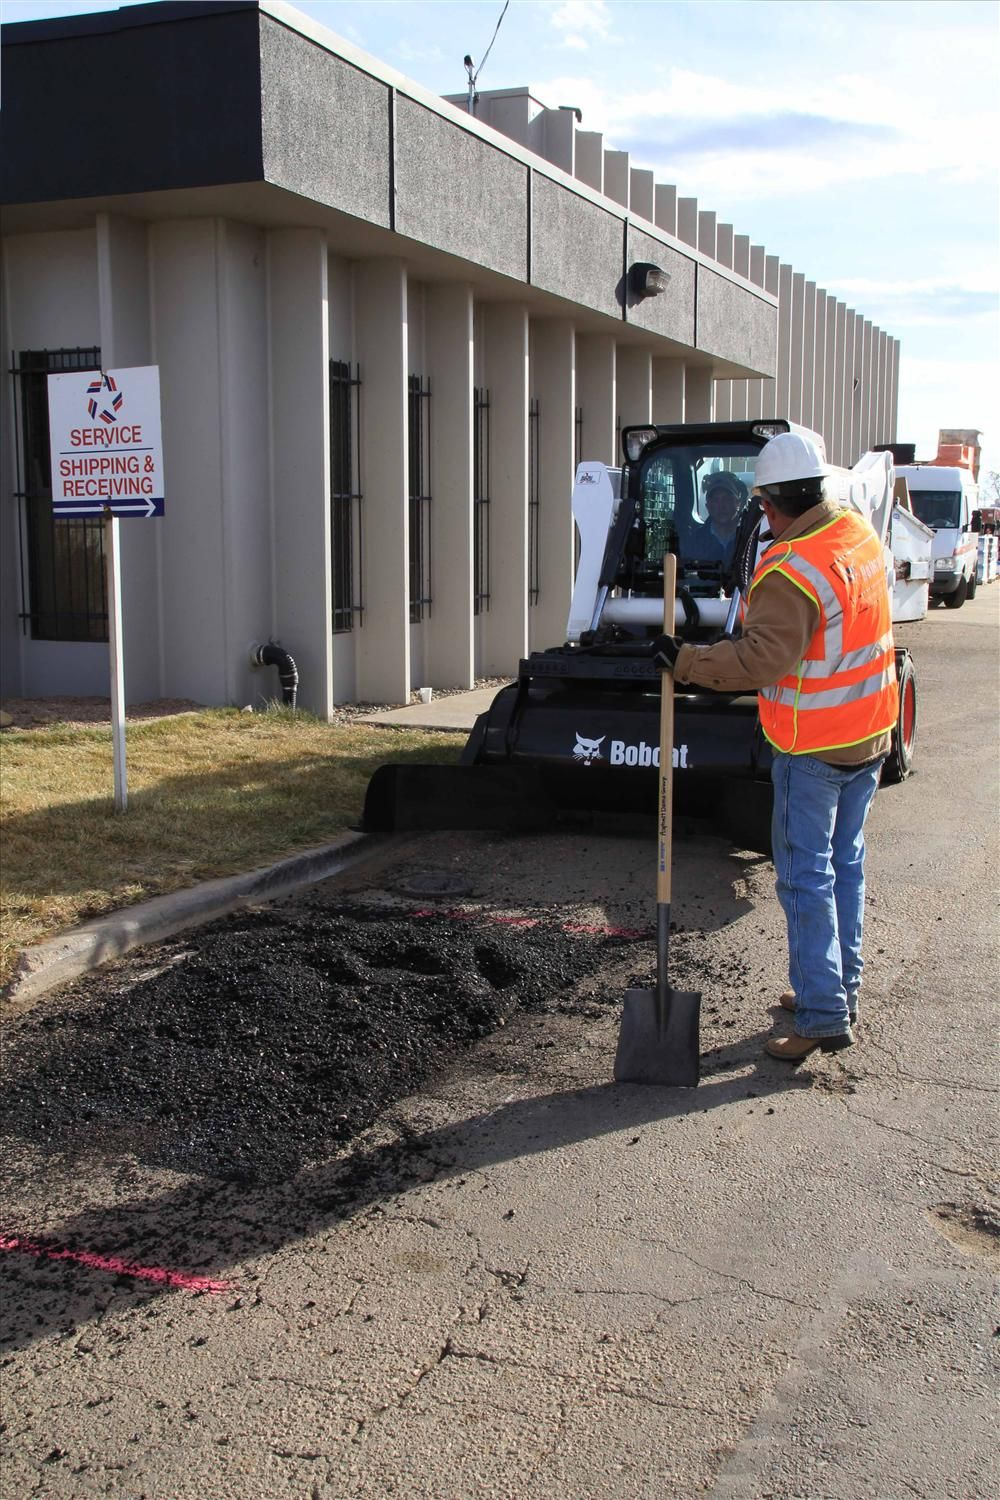 Asphalt preservation tools system will be beneficial to asphalt paving contractors and road repair crews at all levels of government for repairing potholes and other surface defects like cracks, deteriorating surfaces and frost heaves that develop in stre